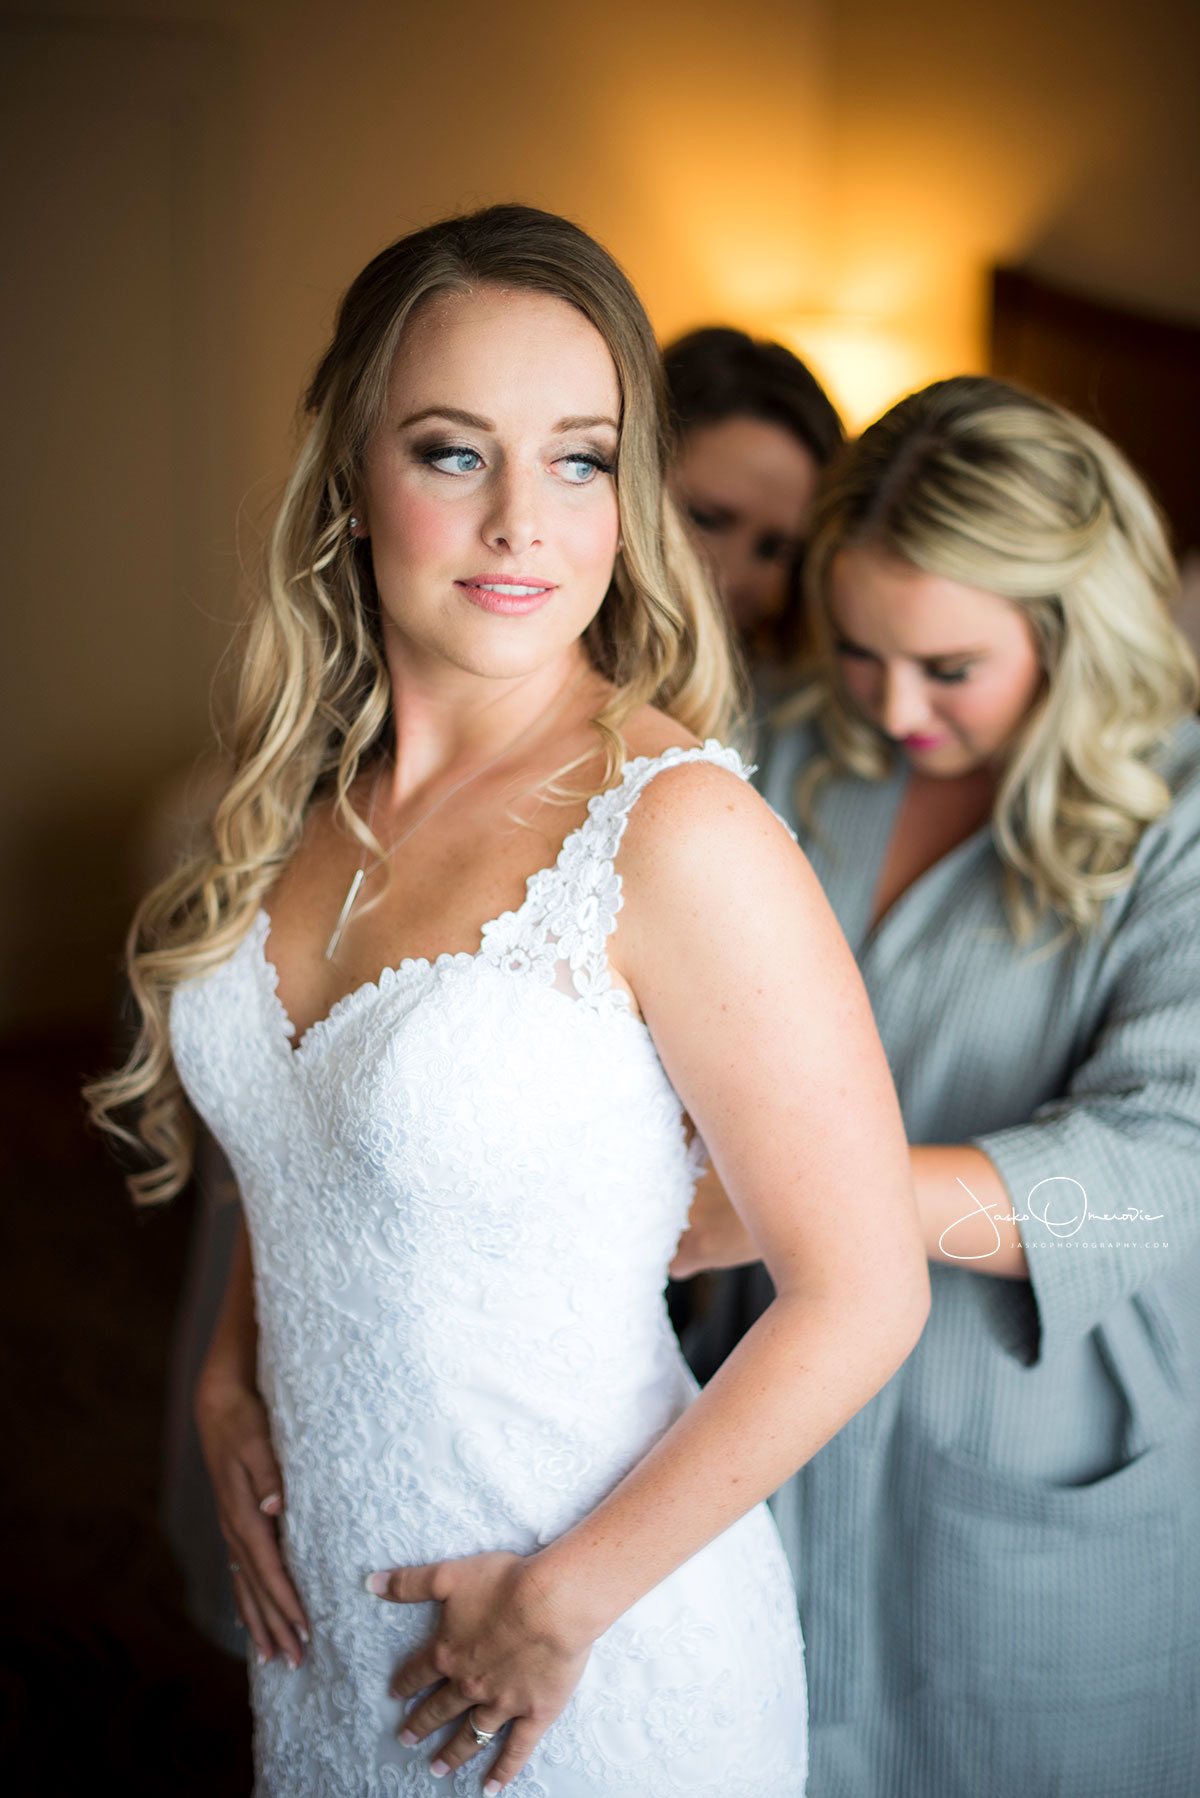 bride getting ready in her dress being helped by bridesmaids